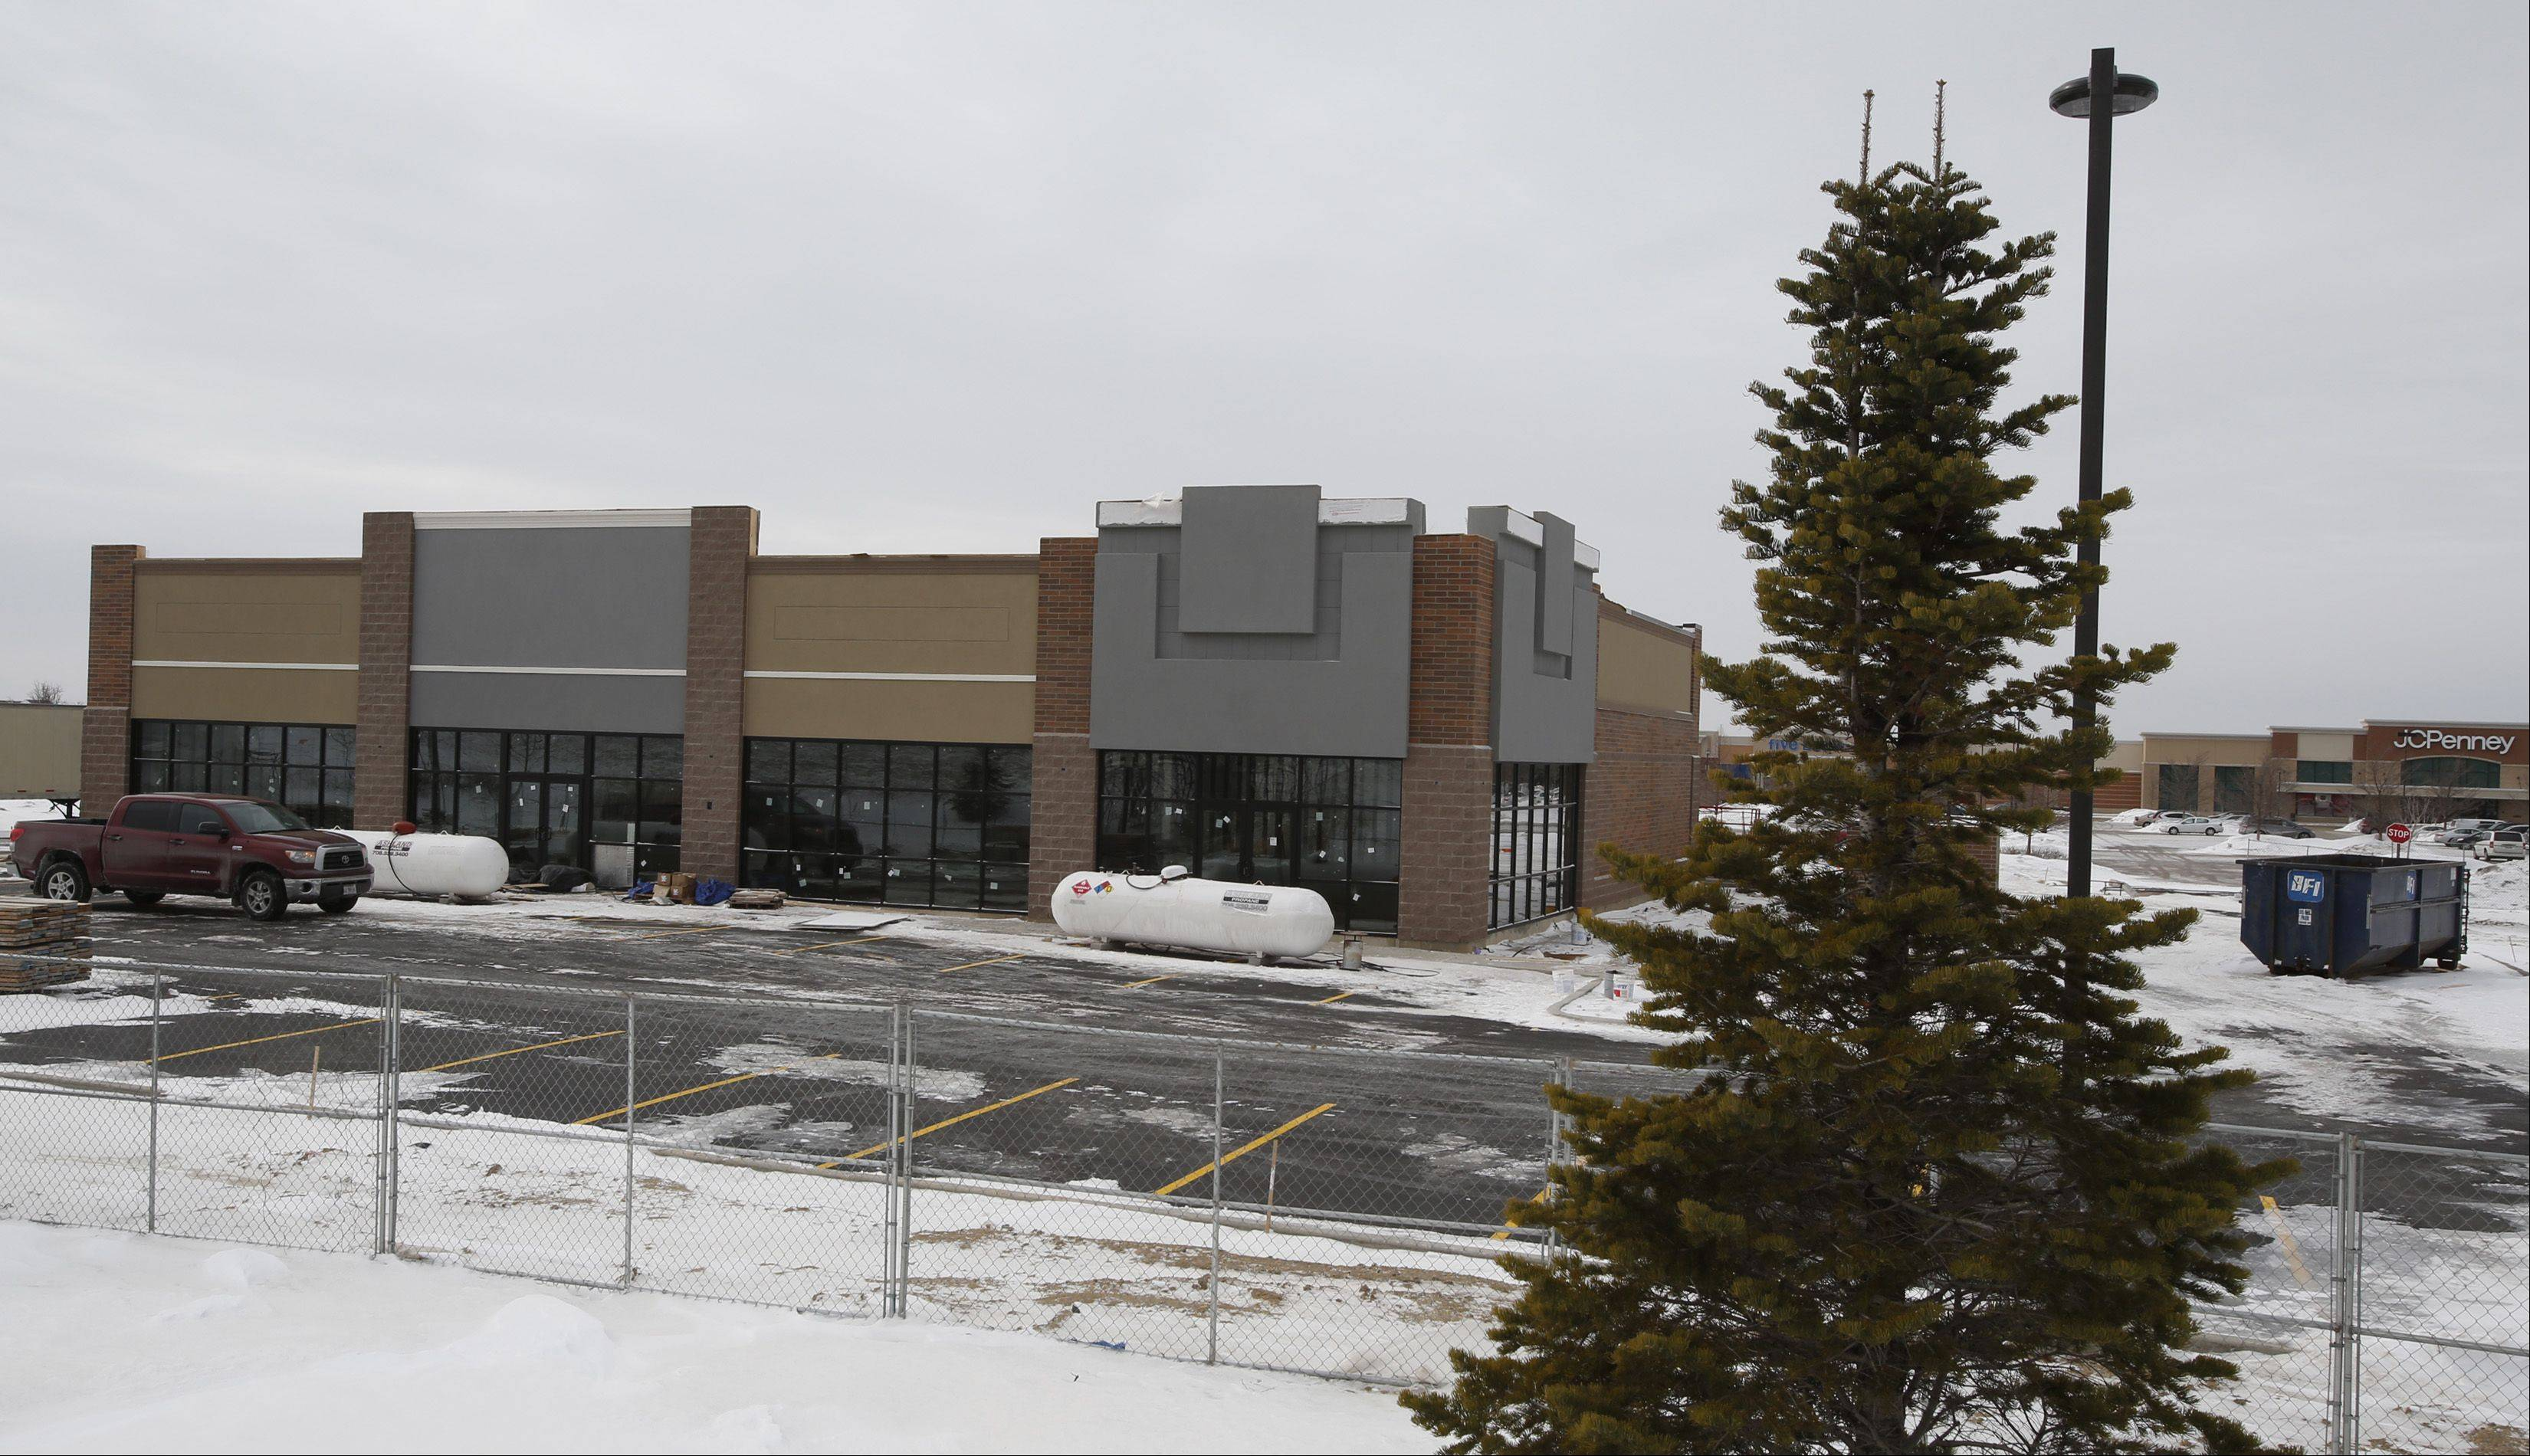 A pair of businesses will occupy this new building under construction east of the JCPenney store on Randall Road in Algonquin.